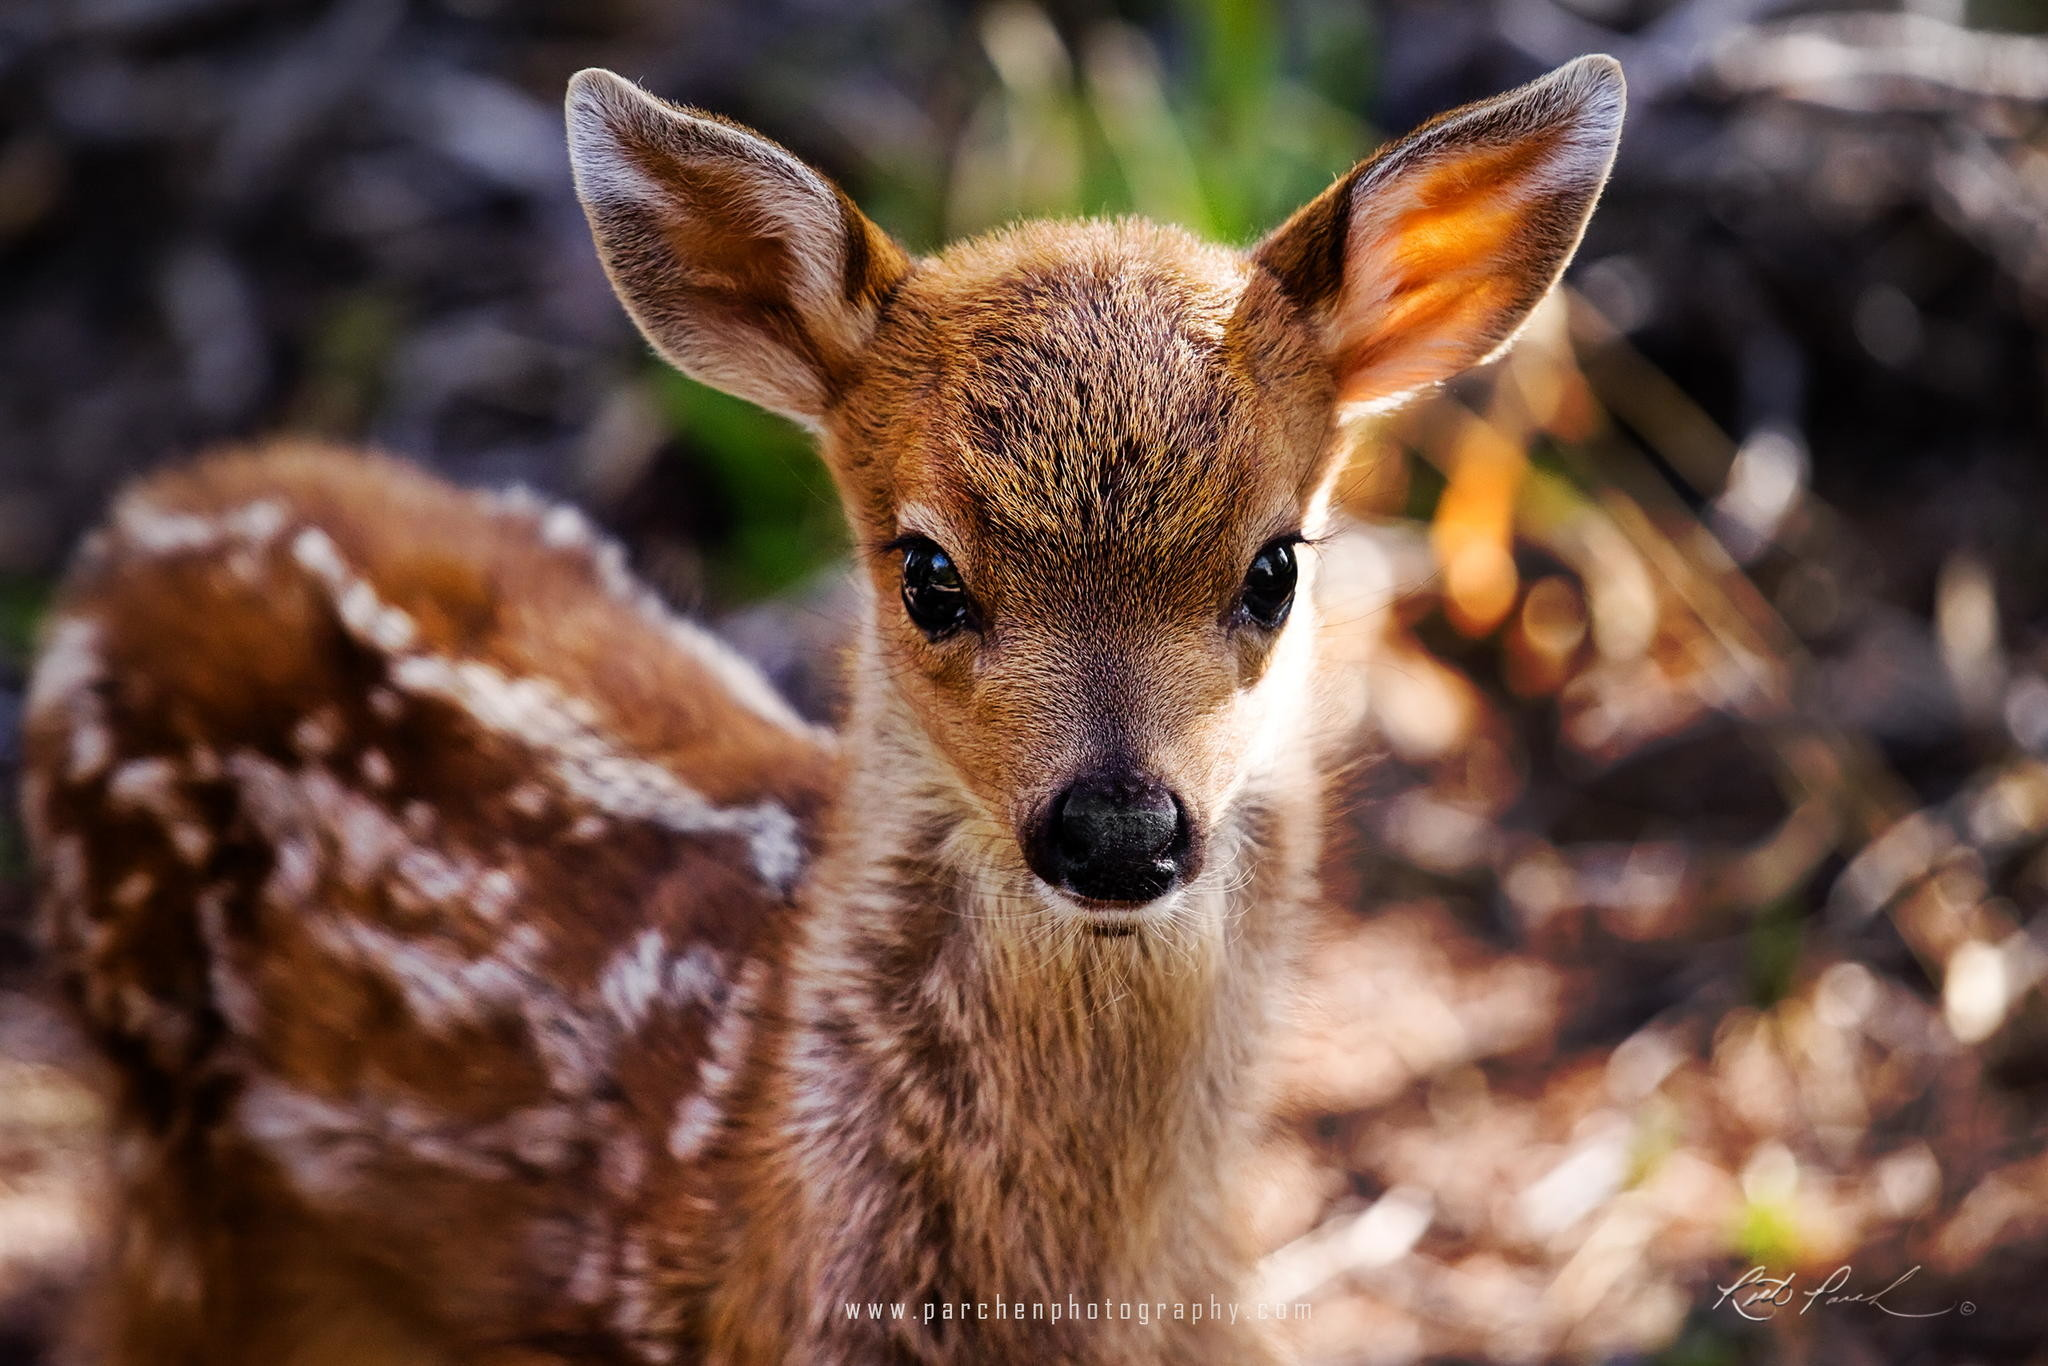 Cute Baby Animal 2018 Wallpaper (72+ pictures)